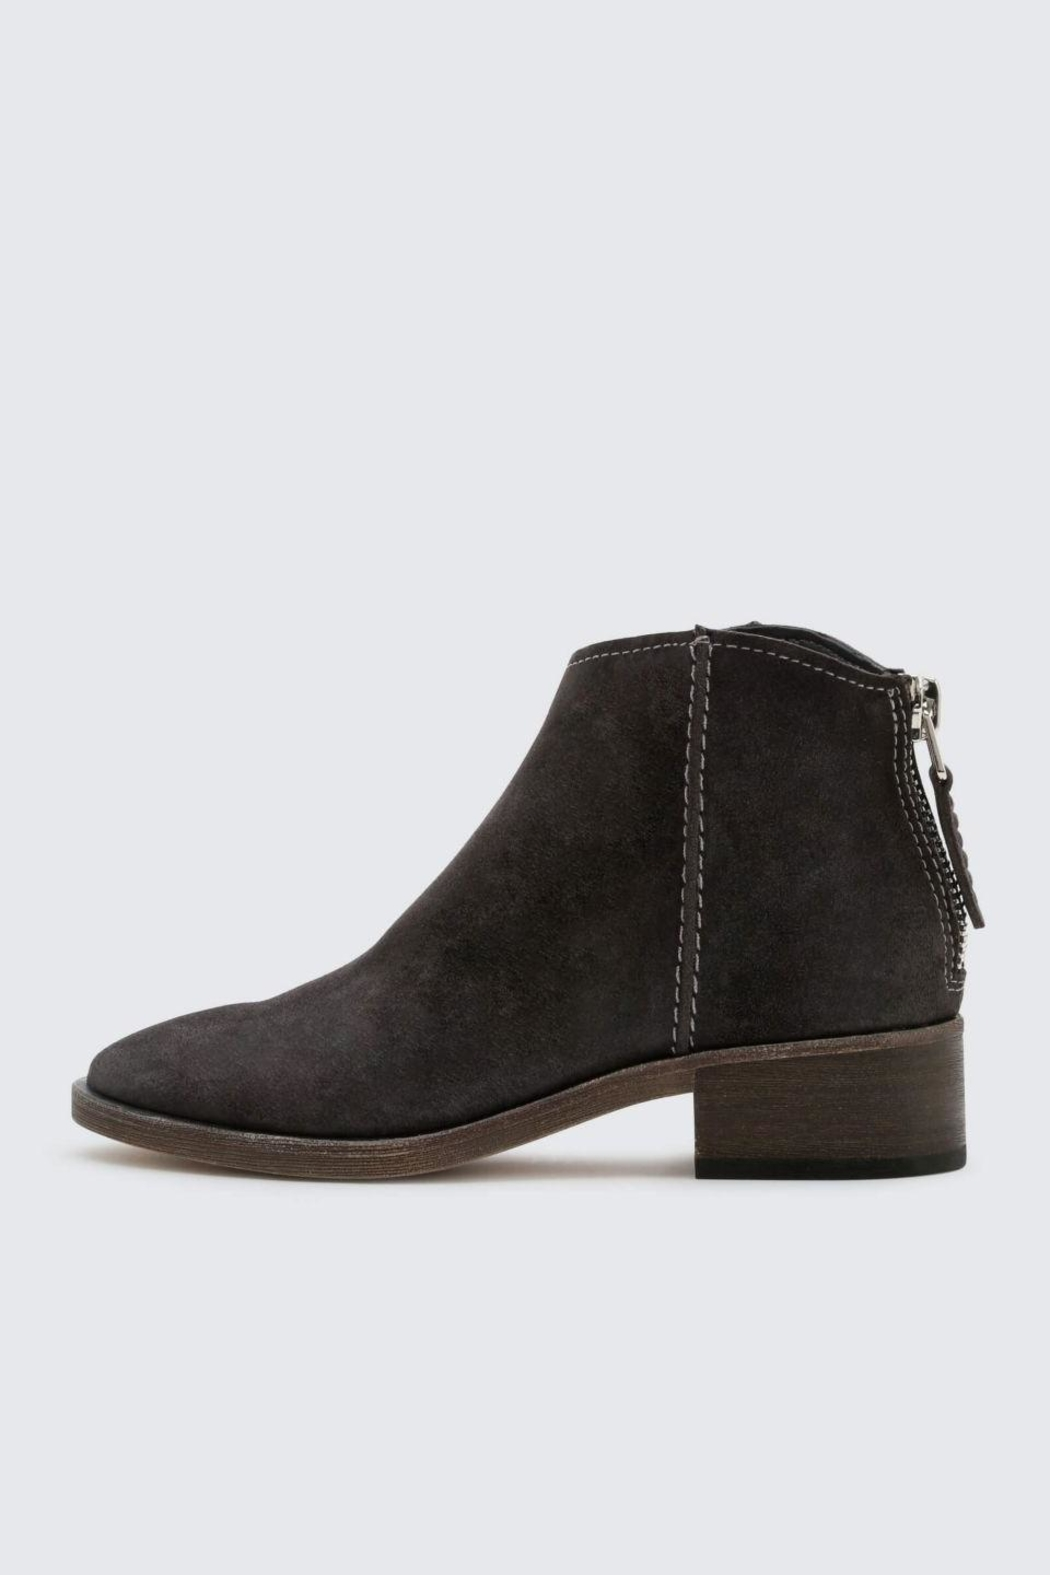 Dolce Vita Anthracite Tucker Booties - Front Cropped Image